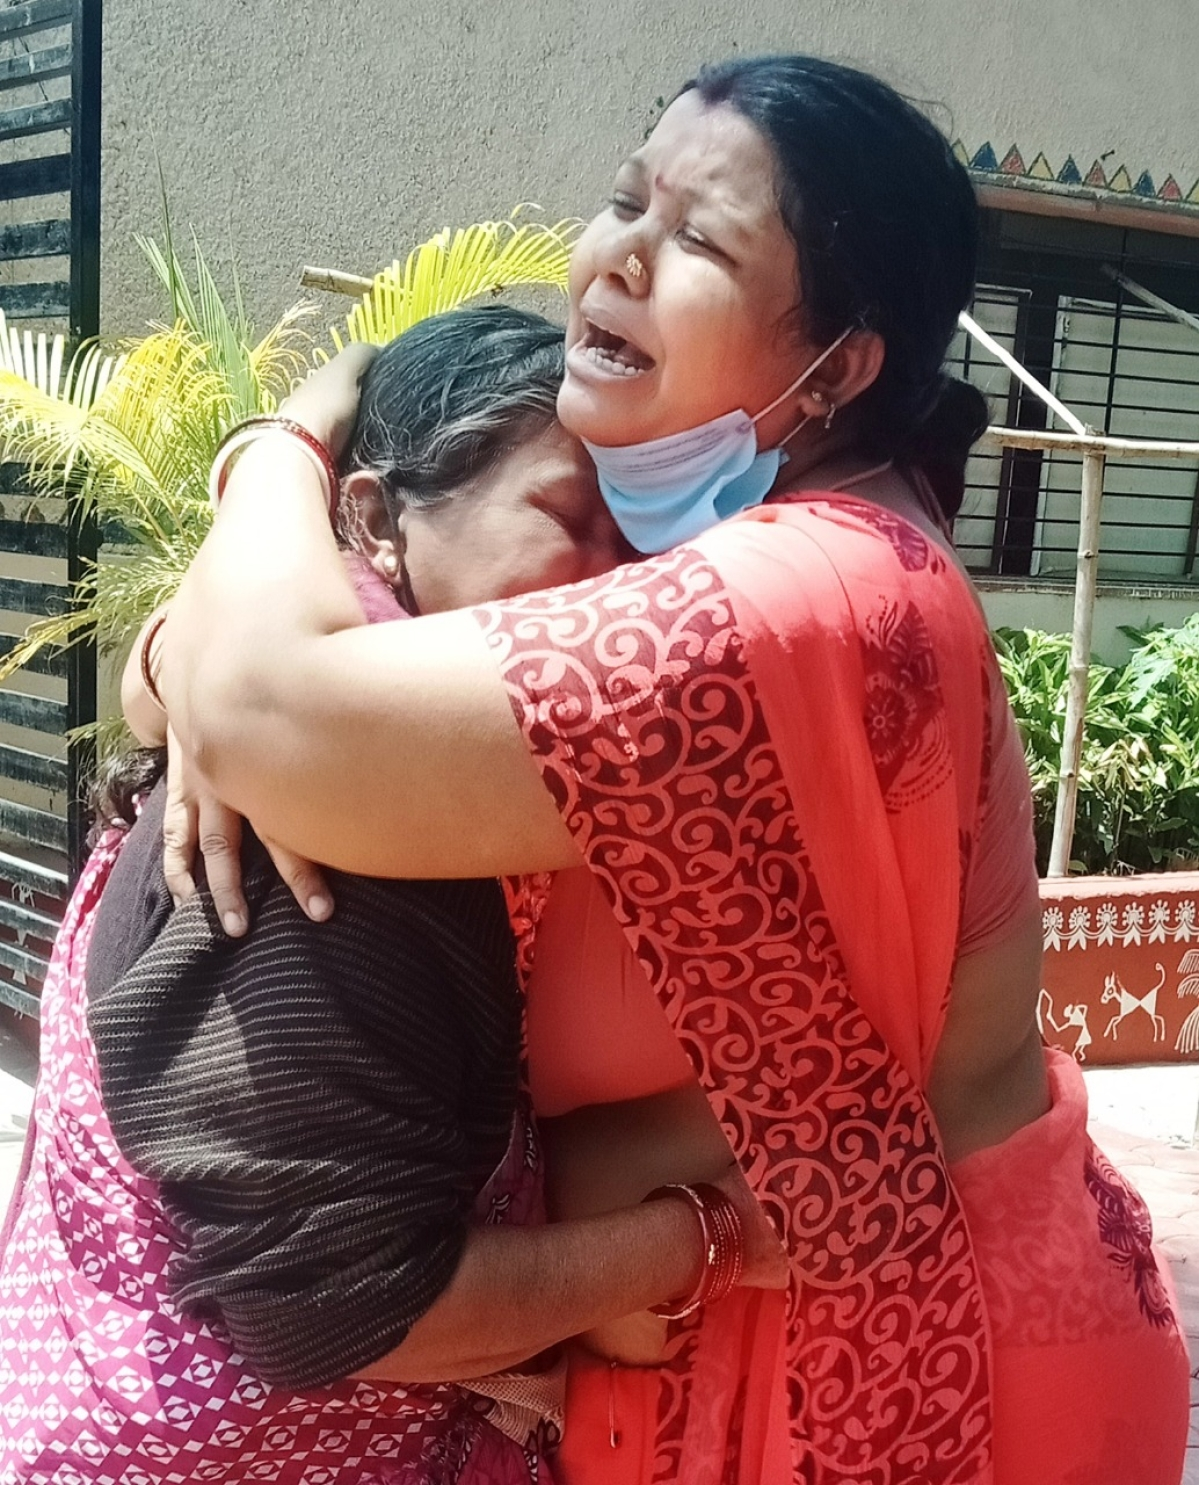 P3: A woman from Bihar reunites with her daughter in the Sevadham Ashrma in Ujjain